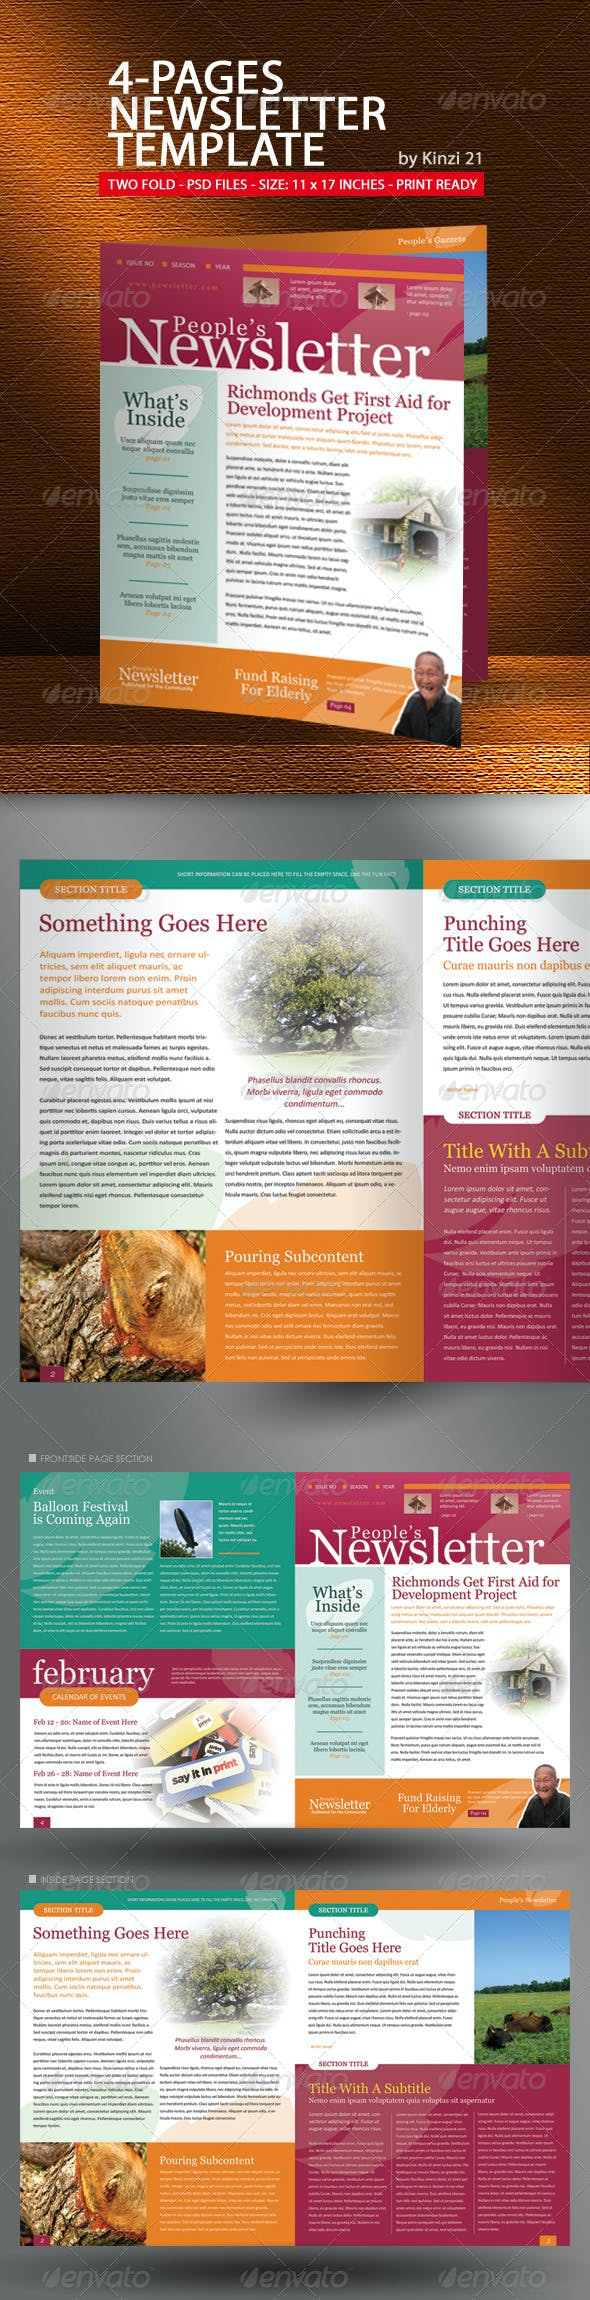 preview_4pages_newsletter_t  H Newsletter Template on girl scouts newsletter template, parent newsletter template, ffa newsletter template, education newsletter template, dance newsletter template, youth newsletter template, knights of columbus newsletter template, soccer newsletter template, school newsletter template, fun newsletter template, basketball newsletter template, boy scouts newsletter template, library newsletter template, events newsletter template, creating a newsletter template, march preschool newsletter template, art newsletter template, day care newsletter template, key club newsletter template,